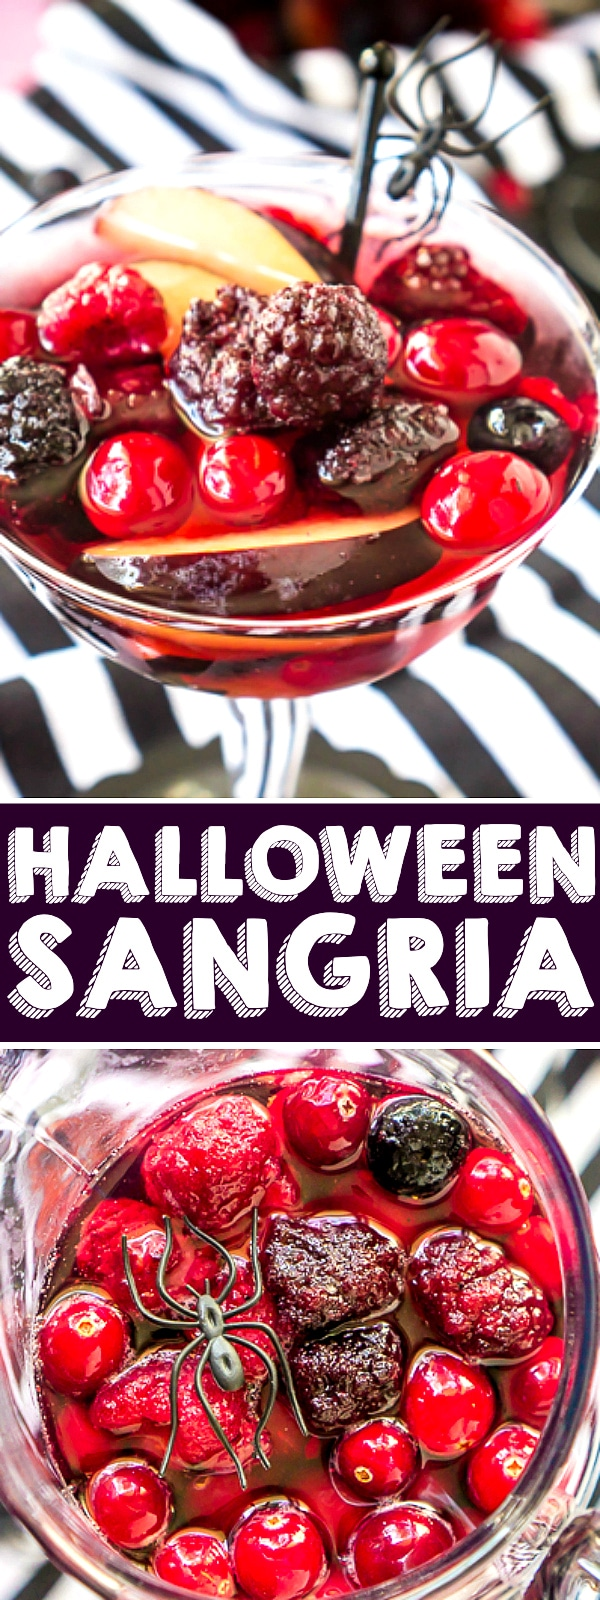 HALLOWEEN SANGRIA - A blackberry and cranberry sangria with shades of purple, pink and red that makes a stunning Halloween punch! Garnish glasses with spiders to give your guests a trick with a spooky Halloween cocktail surprise!  | The Love Nerds #halloweendrinkrecipe #halloweencocktail #cranberrysangria